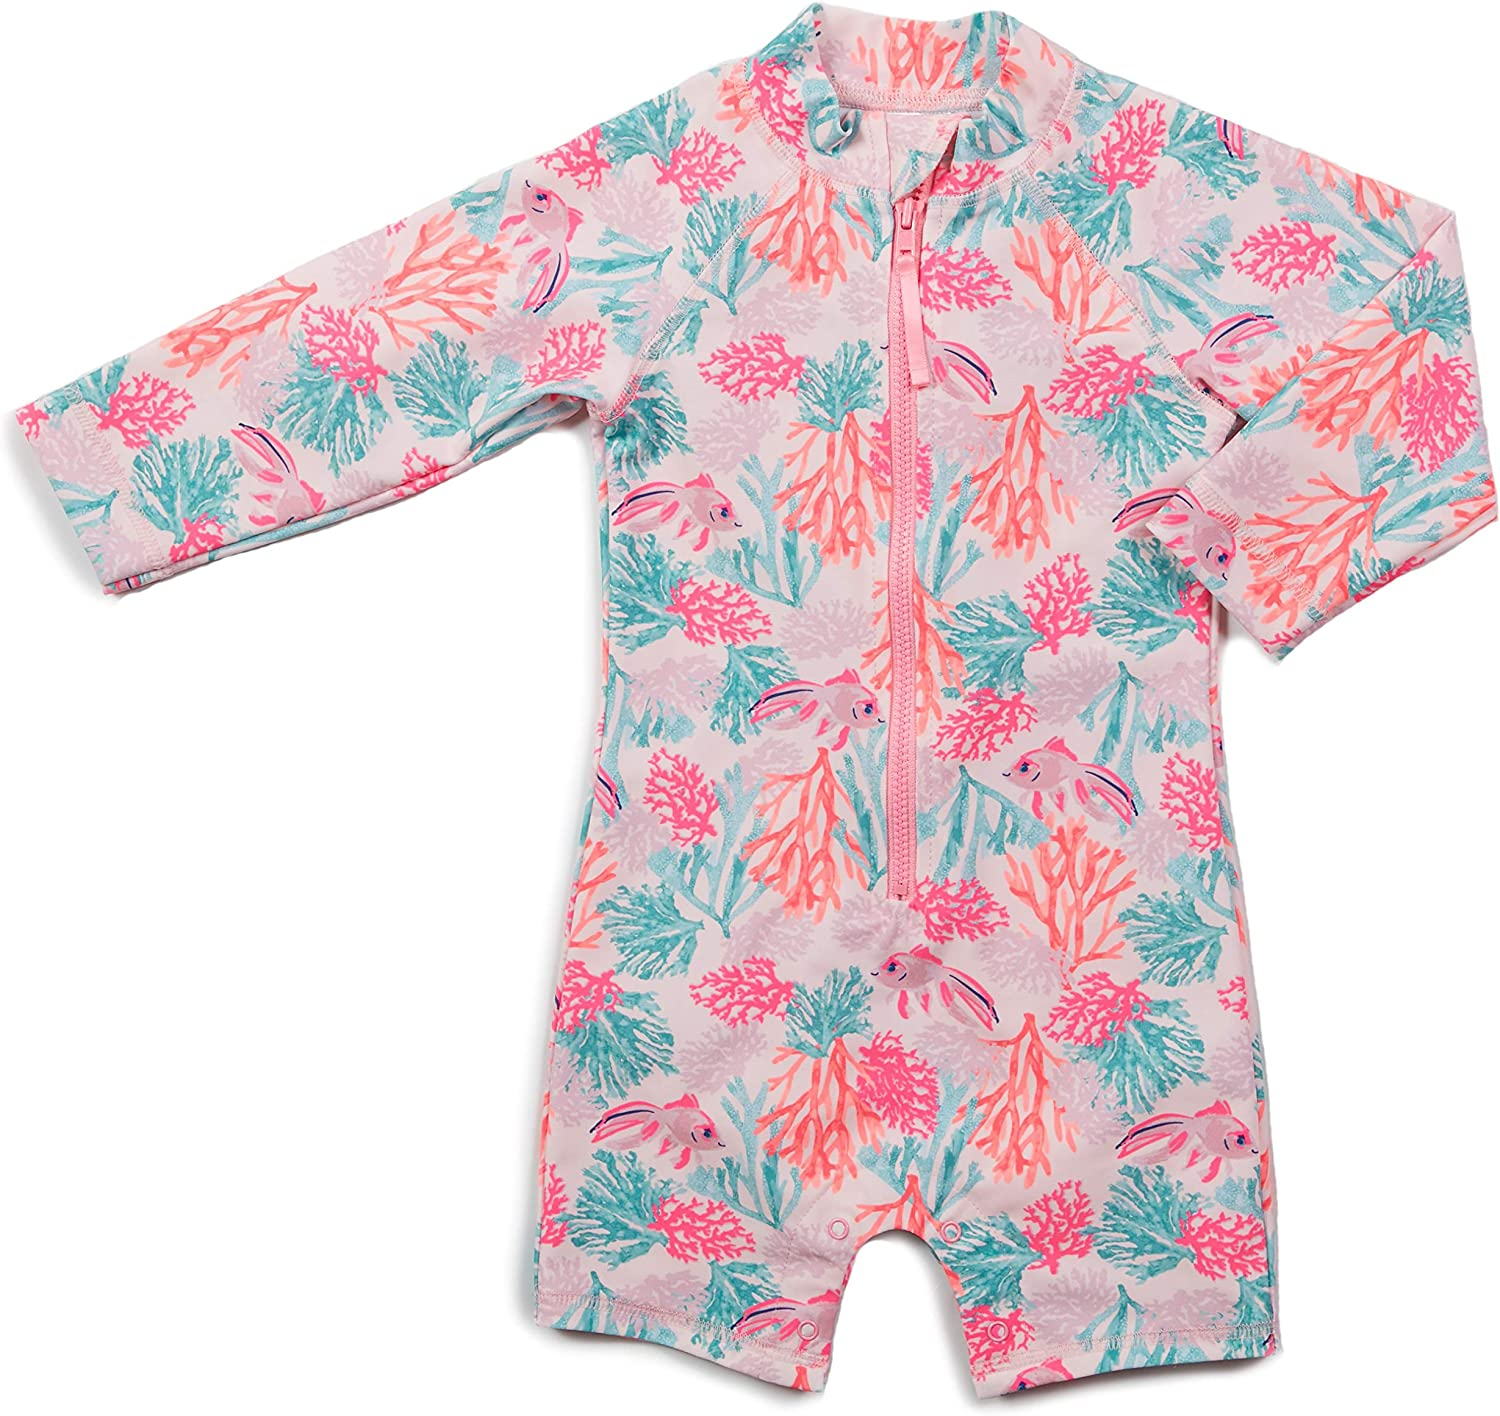 Egg by Susan Lazar Jessie Shortall One Piece Swimsuit 12 Months, Multi Color with Coral Print